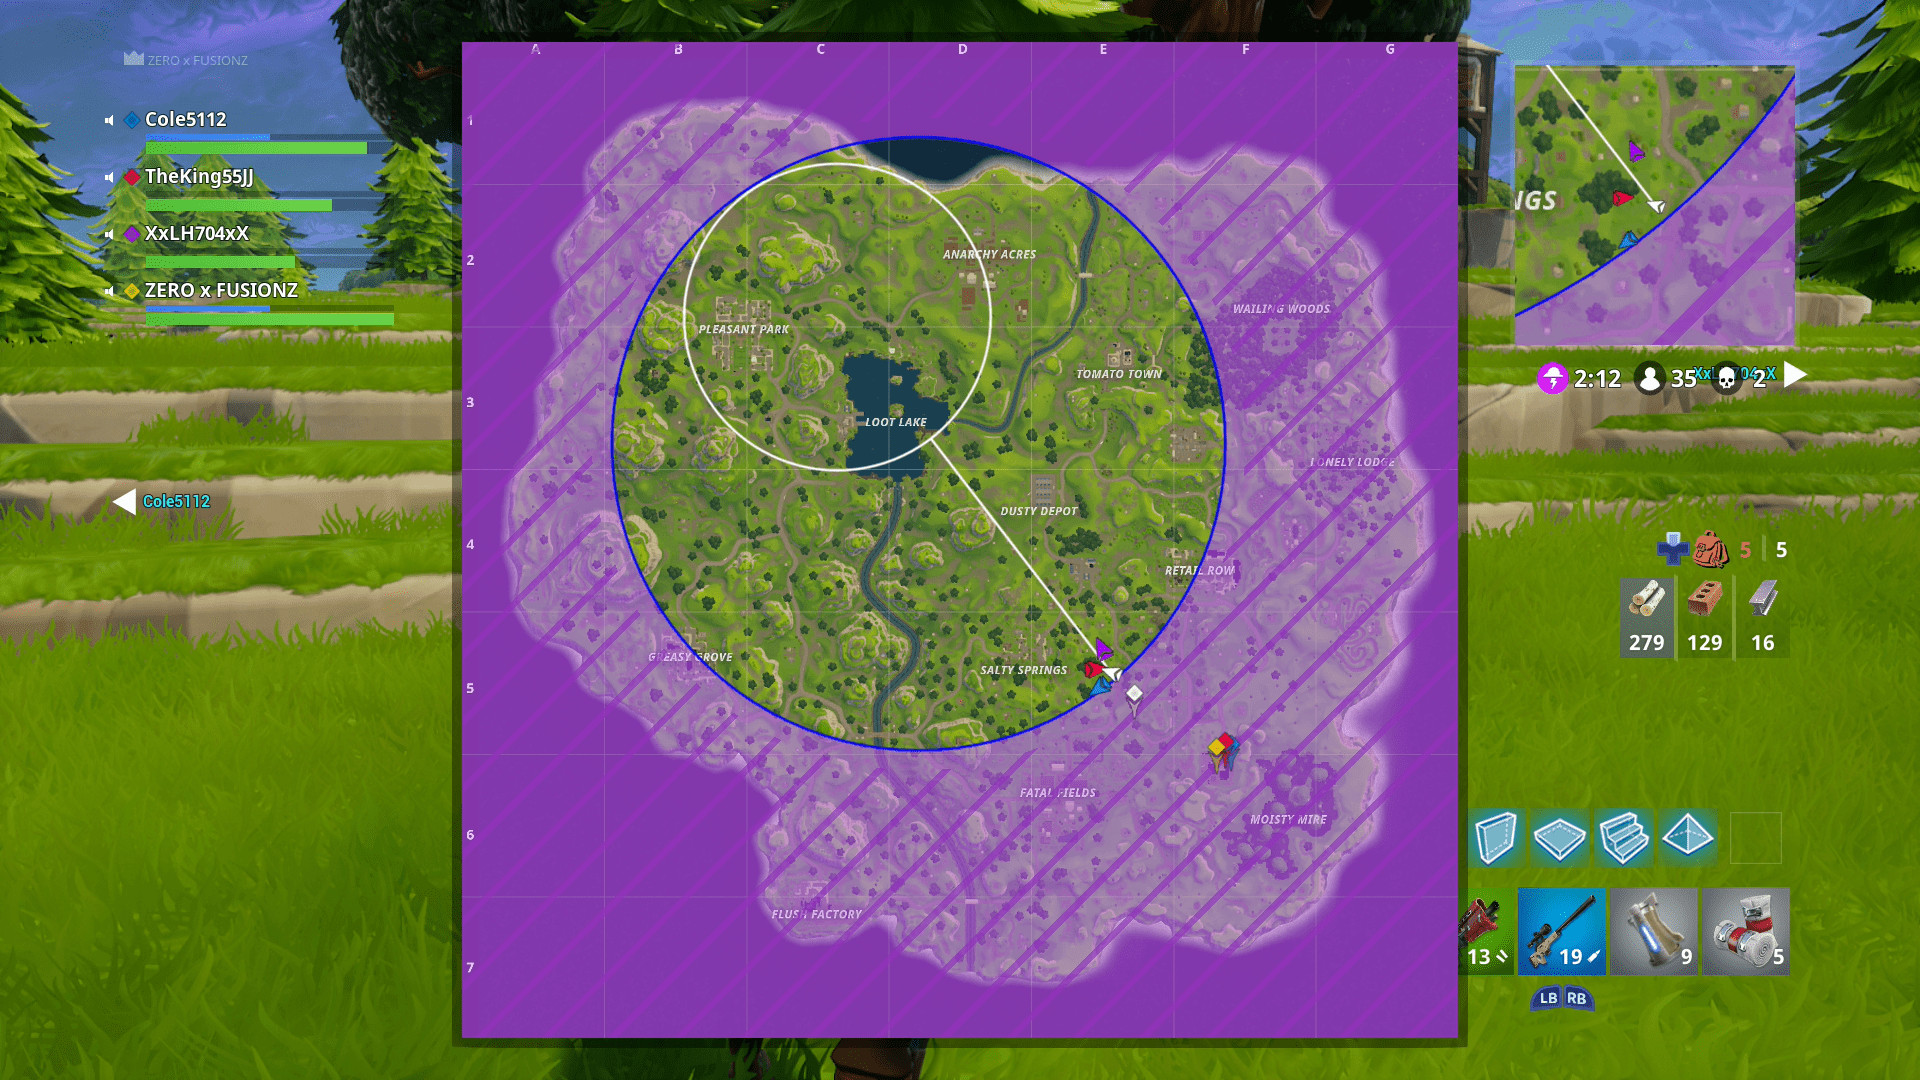 Printable fortnite Map Season 4 New Loot Llama Heat Map Season 4k